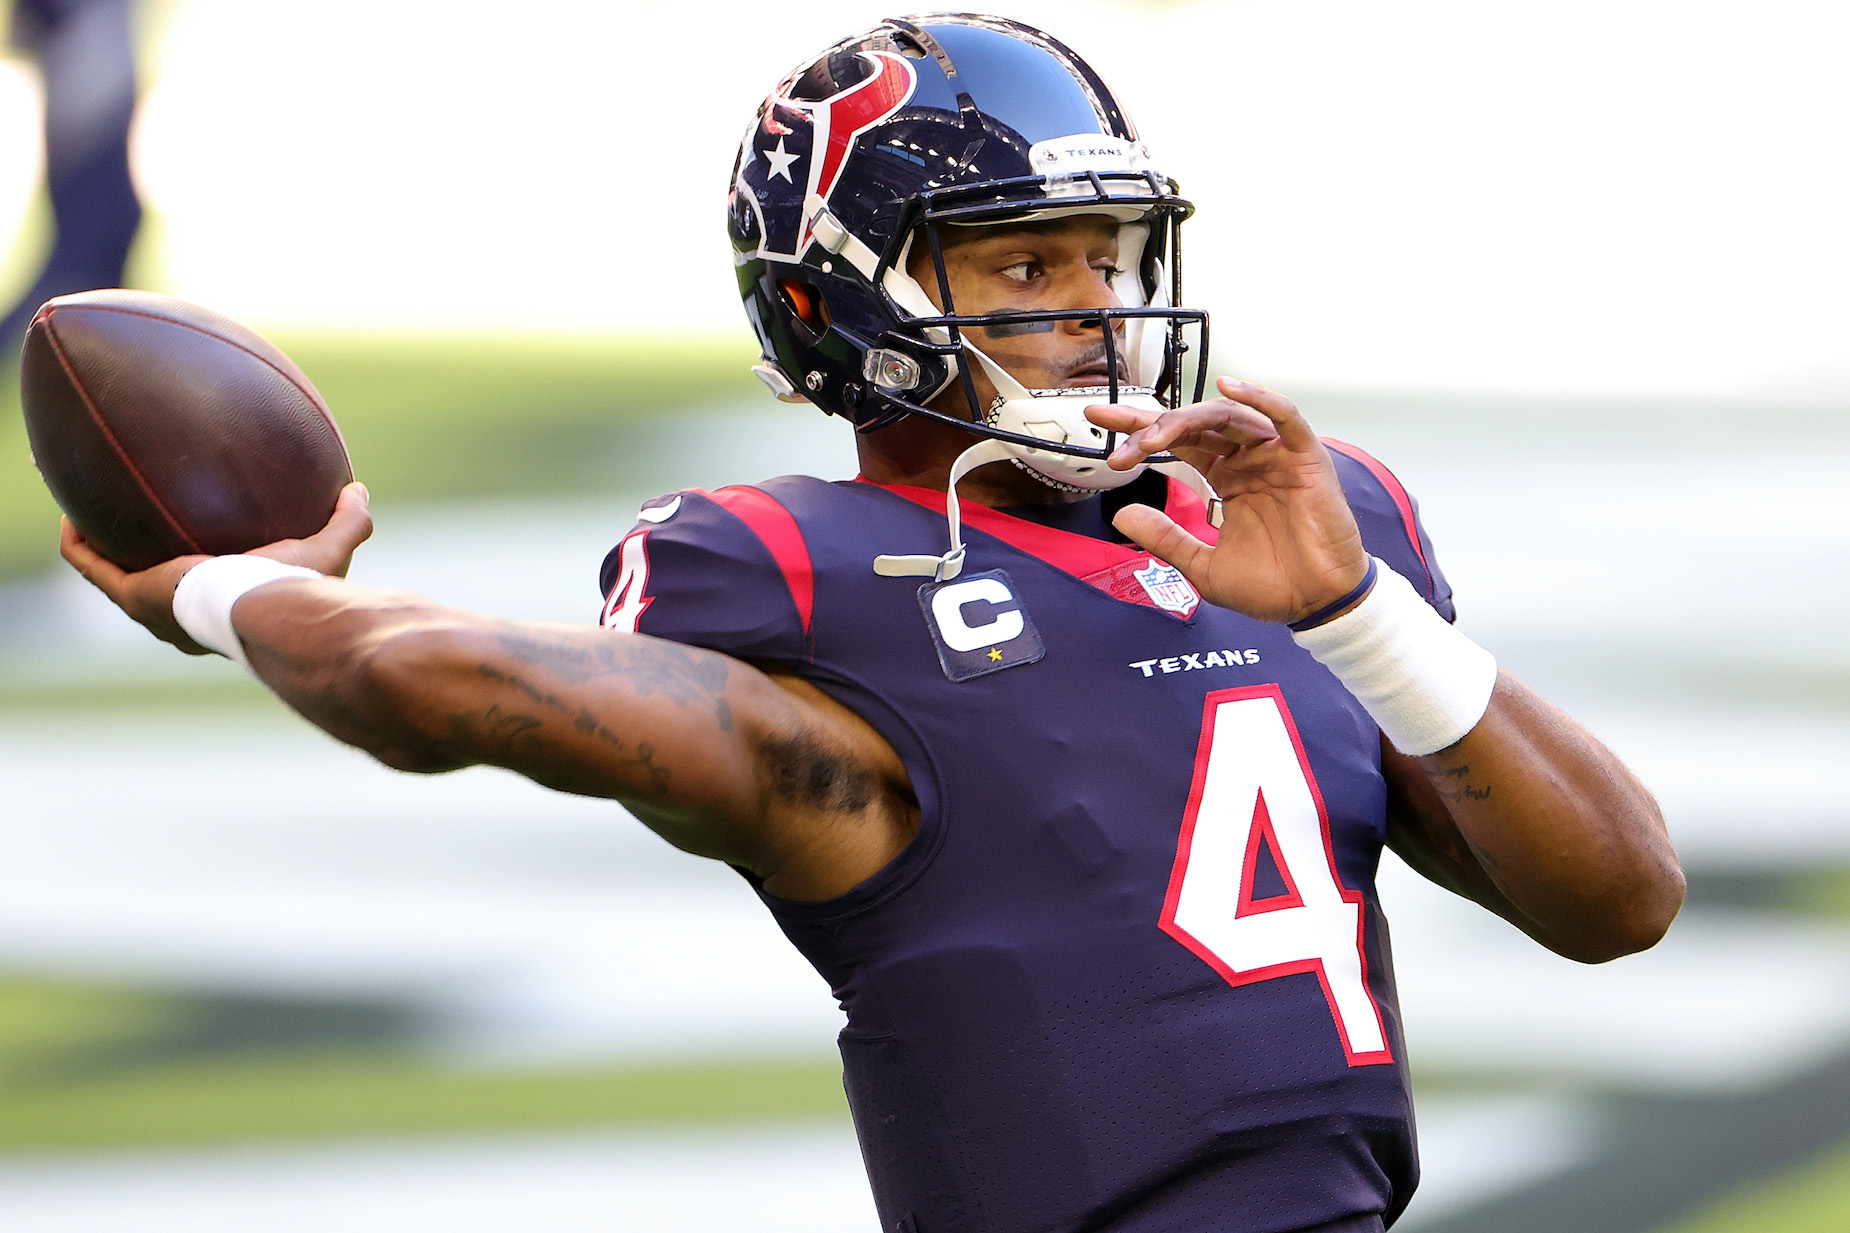 Houston Texans Quarterback Deshaun Watson Reportedly 'Wants to Play' for 2 Specific Teams in 2021, According to an NFL Insider